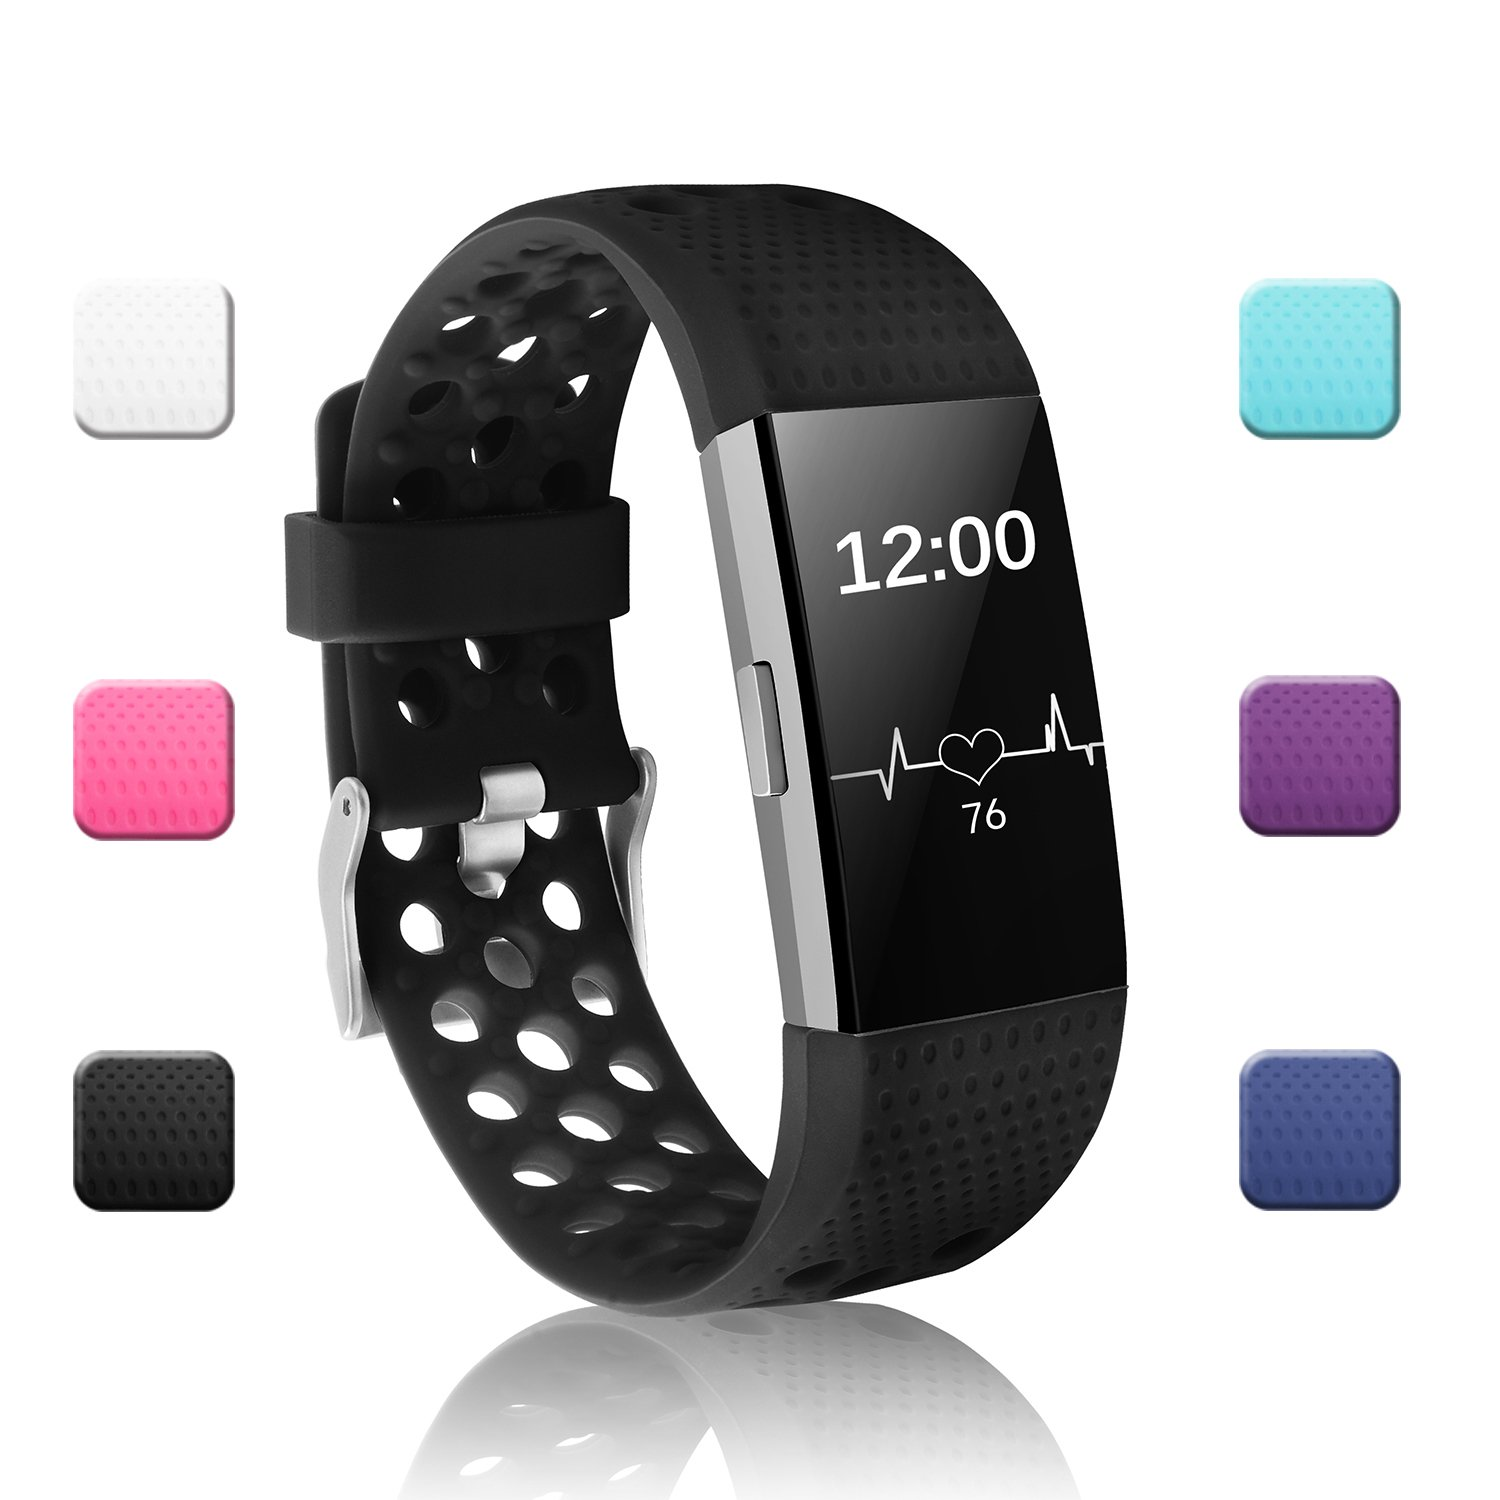 """Poy Fitbit Charge 2バンド調節可能クラシックSpecial Edition交換Wristbands for Fitbit Charge 2 B07BMSRKKZ ニューブラック S (for 5.5-6.7"""" wrist) S (for 5.5-6.7"""" wrist)